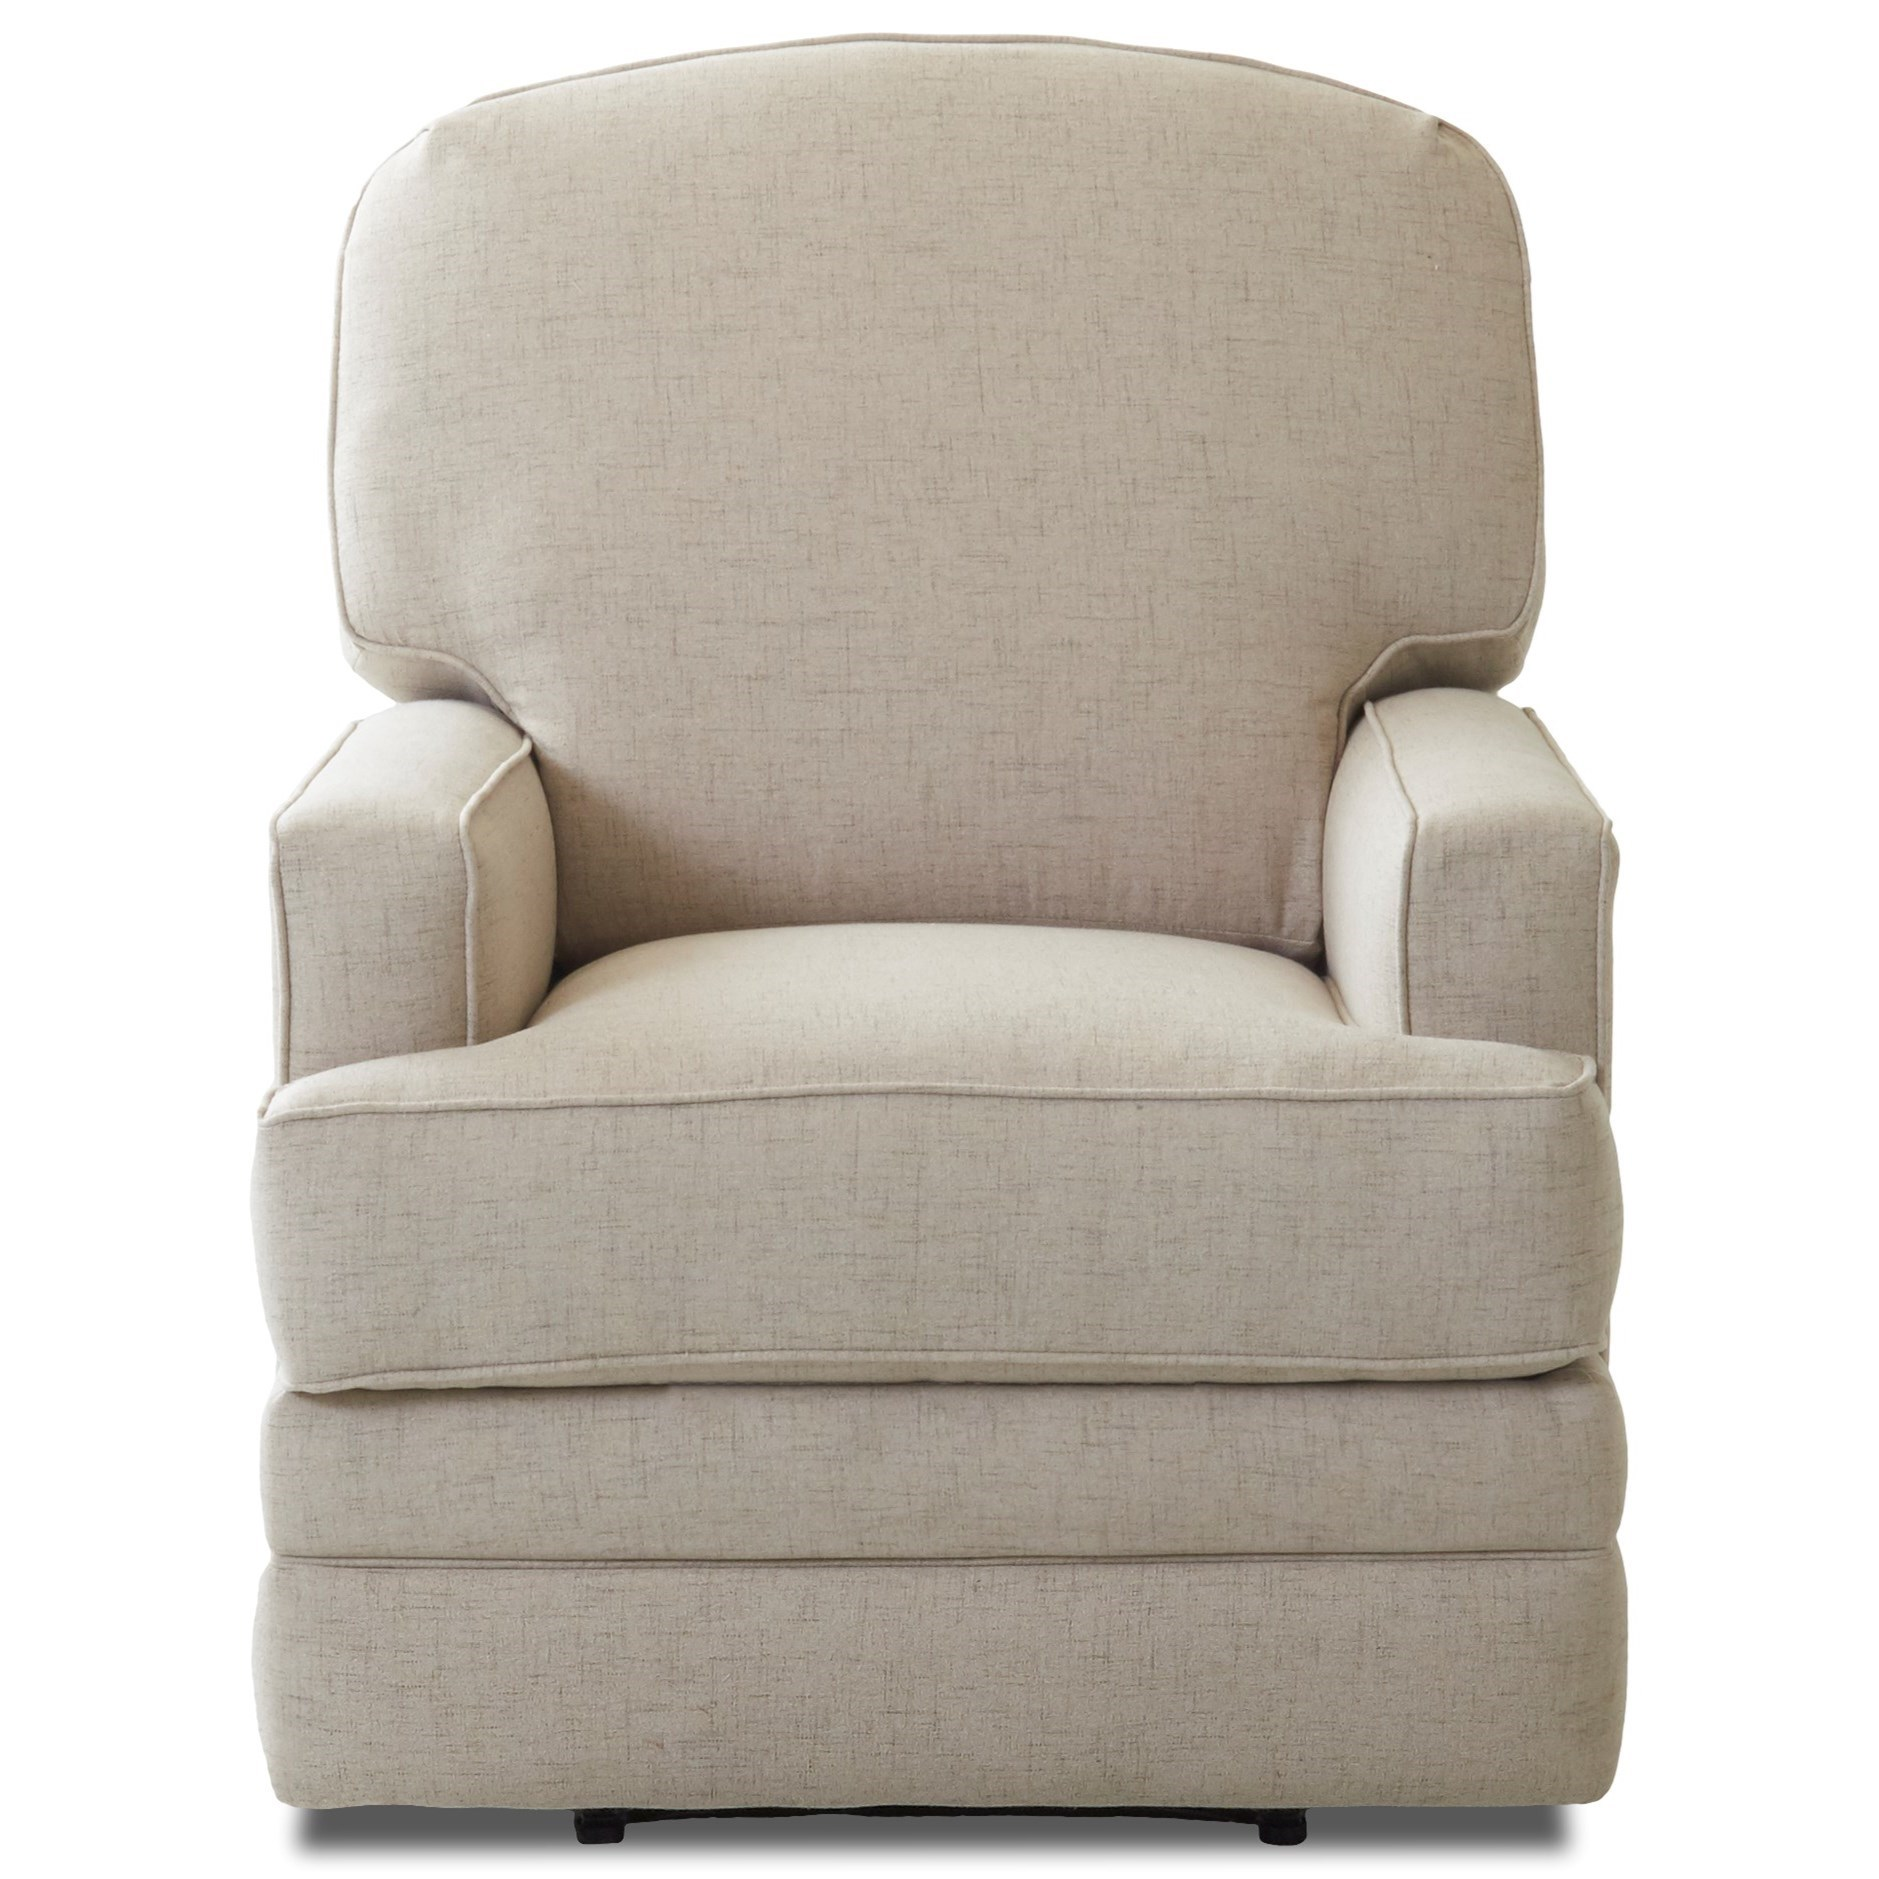 Chapman Casual Swivel Rocking Reclining Chair by Klaussner at Catalog Outlet